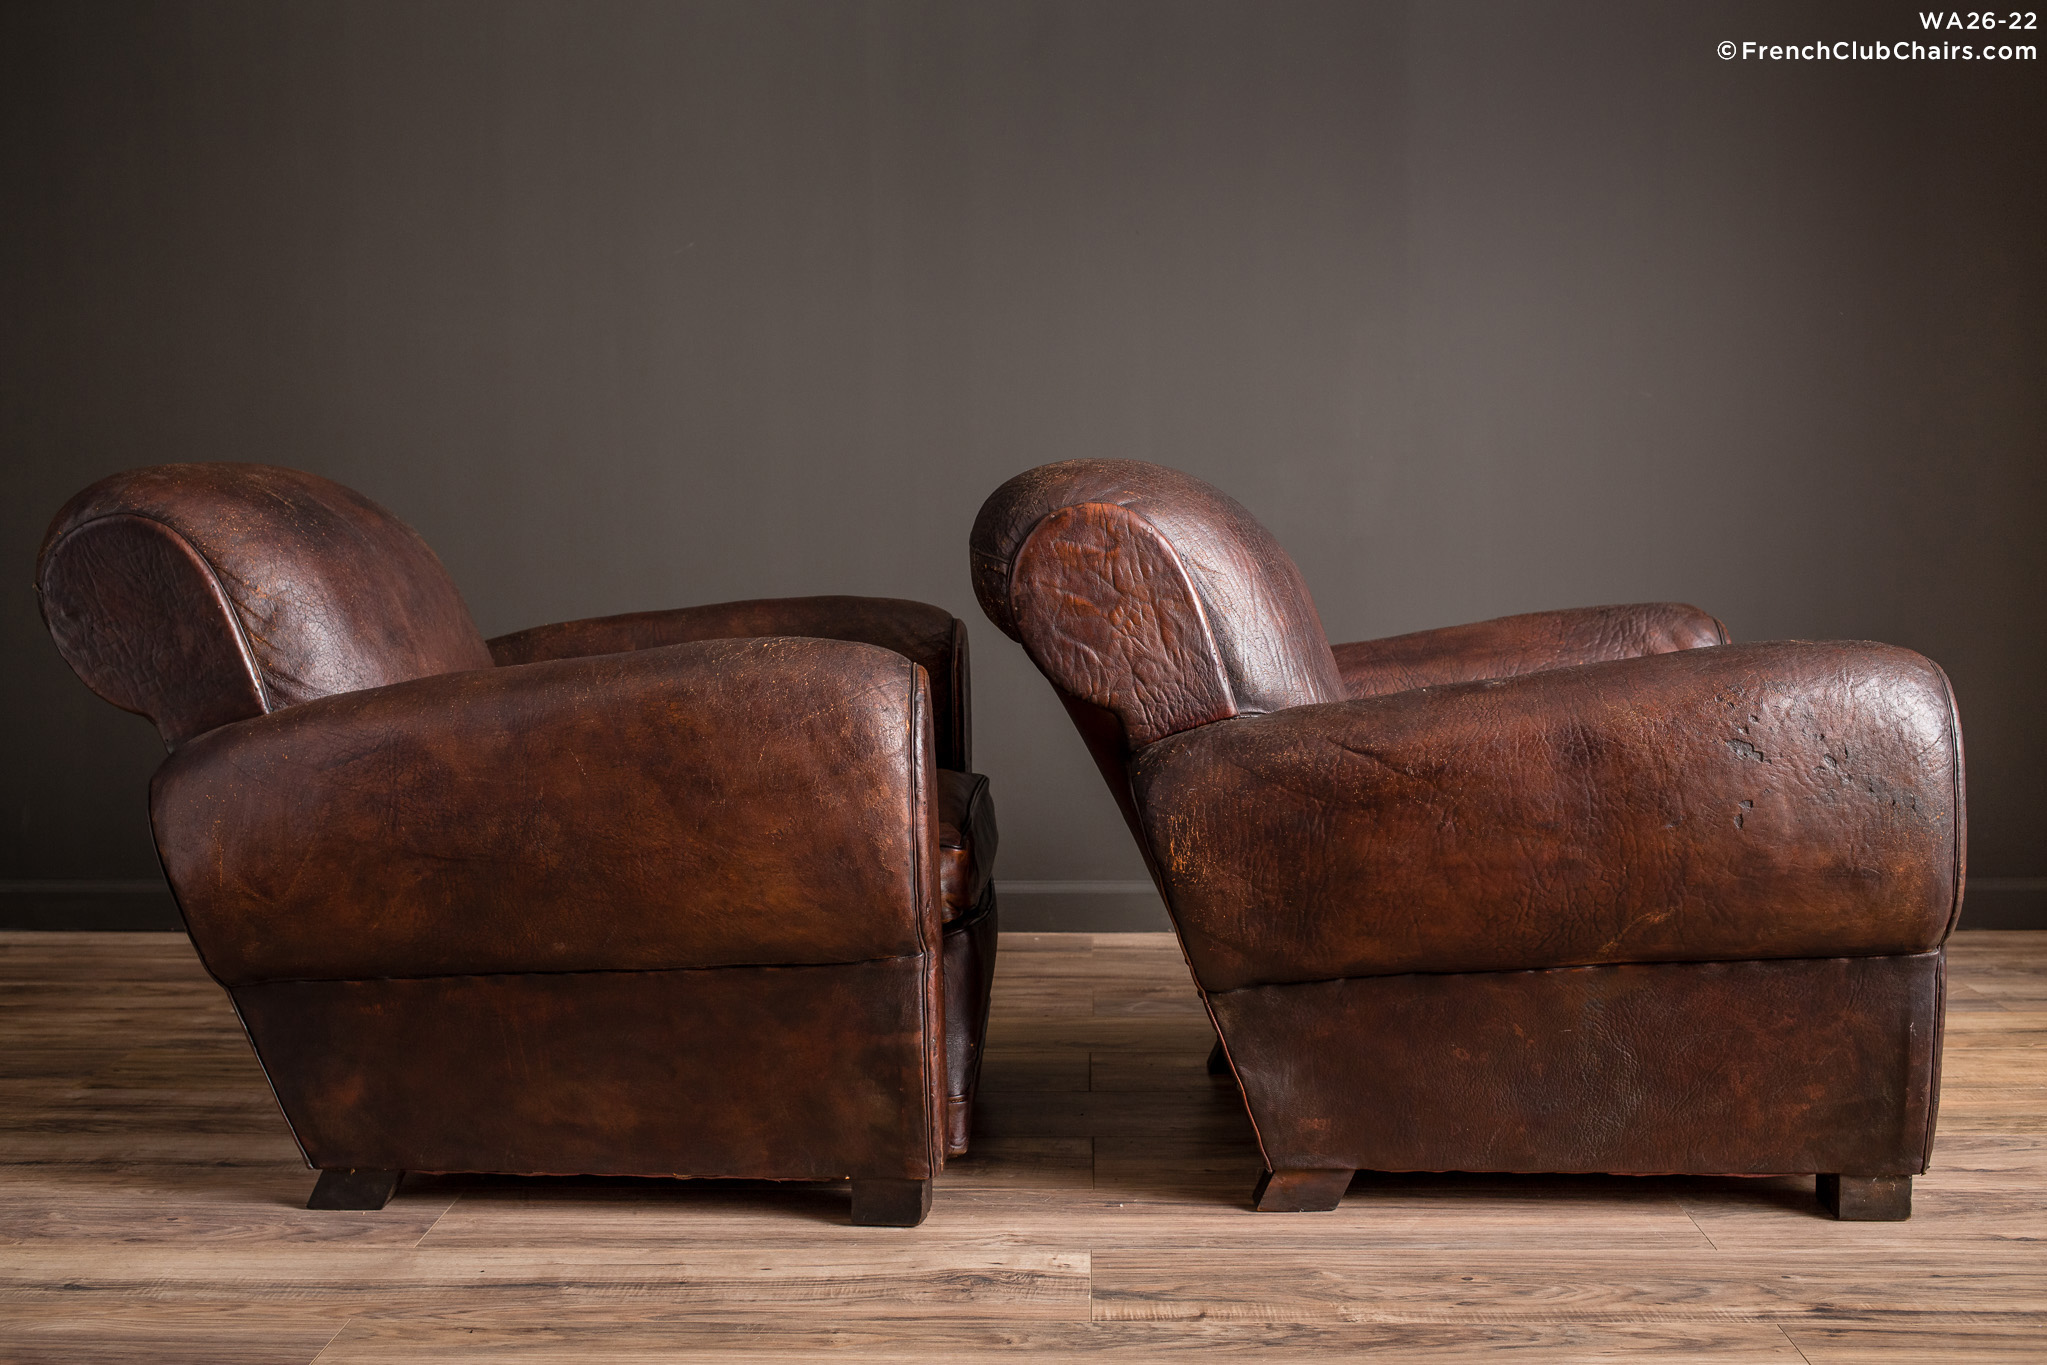 WA_26-22_Biarritz_Rich_Chocolate_Rollback_pair_R_3RT-v01-williams-antiks-leather-french-club-chair-wa_fcccom